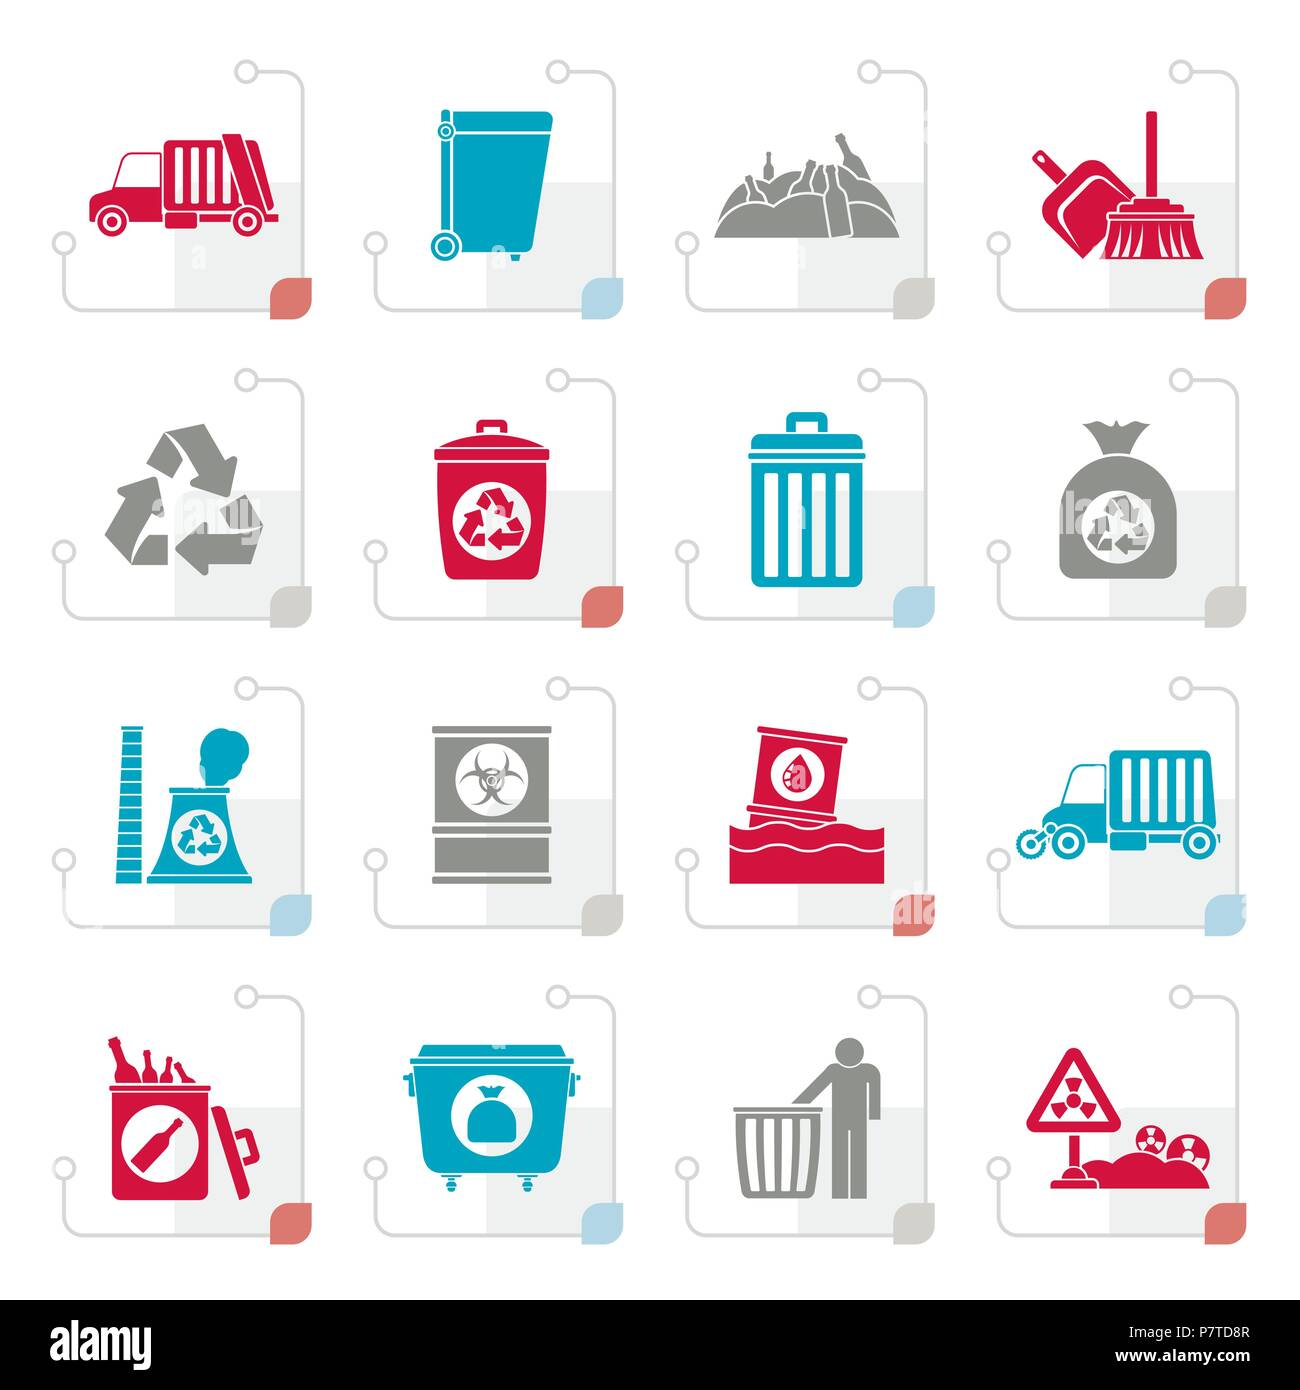 Stylized Garbage, cleaning and rubbish icons - vector icon set - Stock Vector